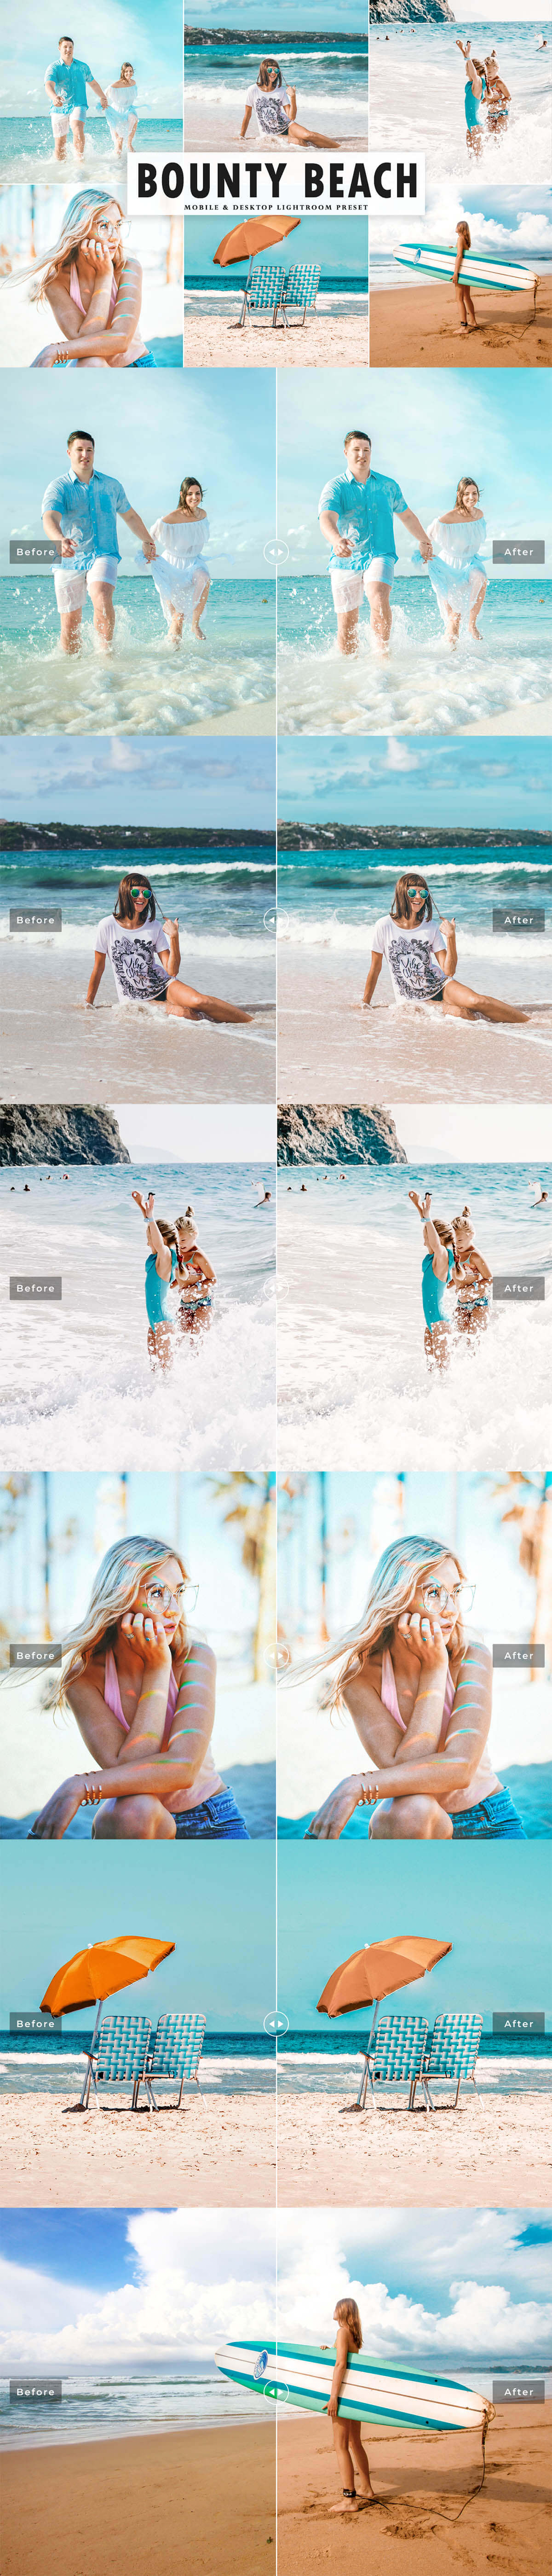 Free Bounty Beach Lightroom Preset